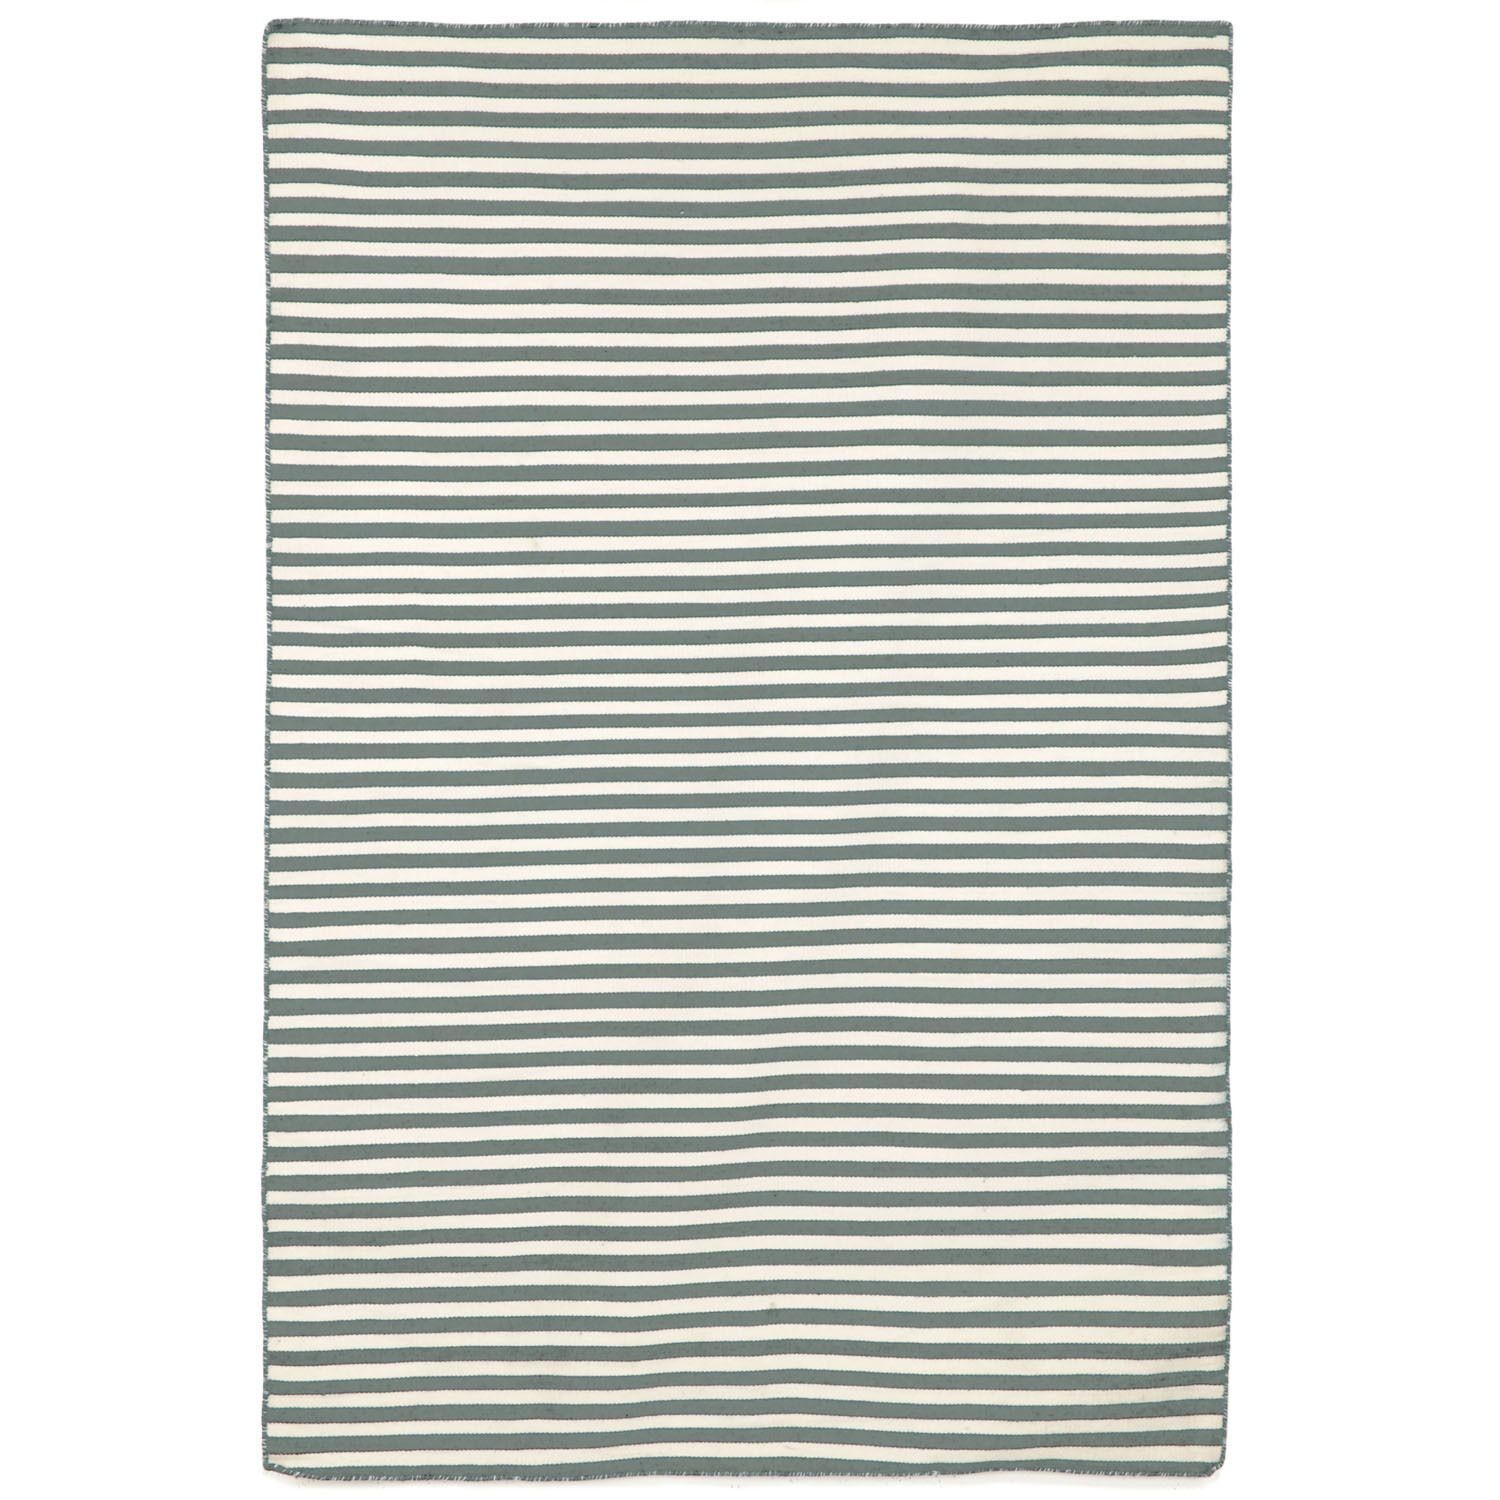 simple rug patterns. Simple Stripe Patterns Combine With Sophisticated Blended Colors In This Indoor/outdoor Flatweave. Rug N